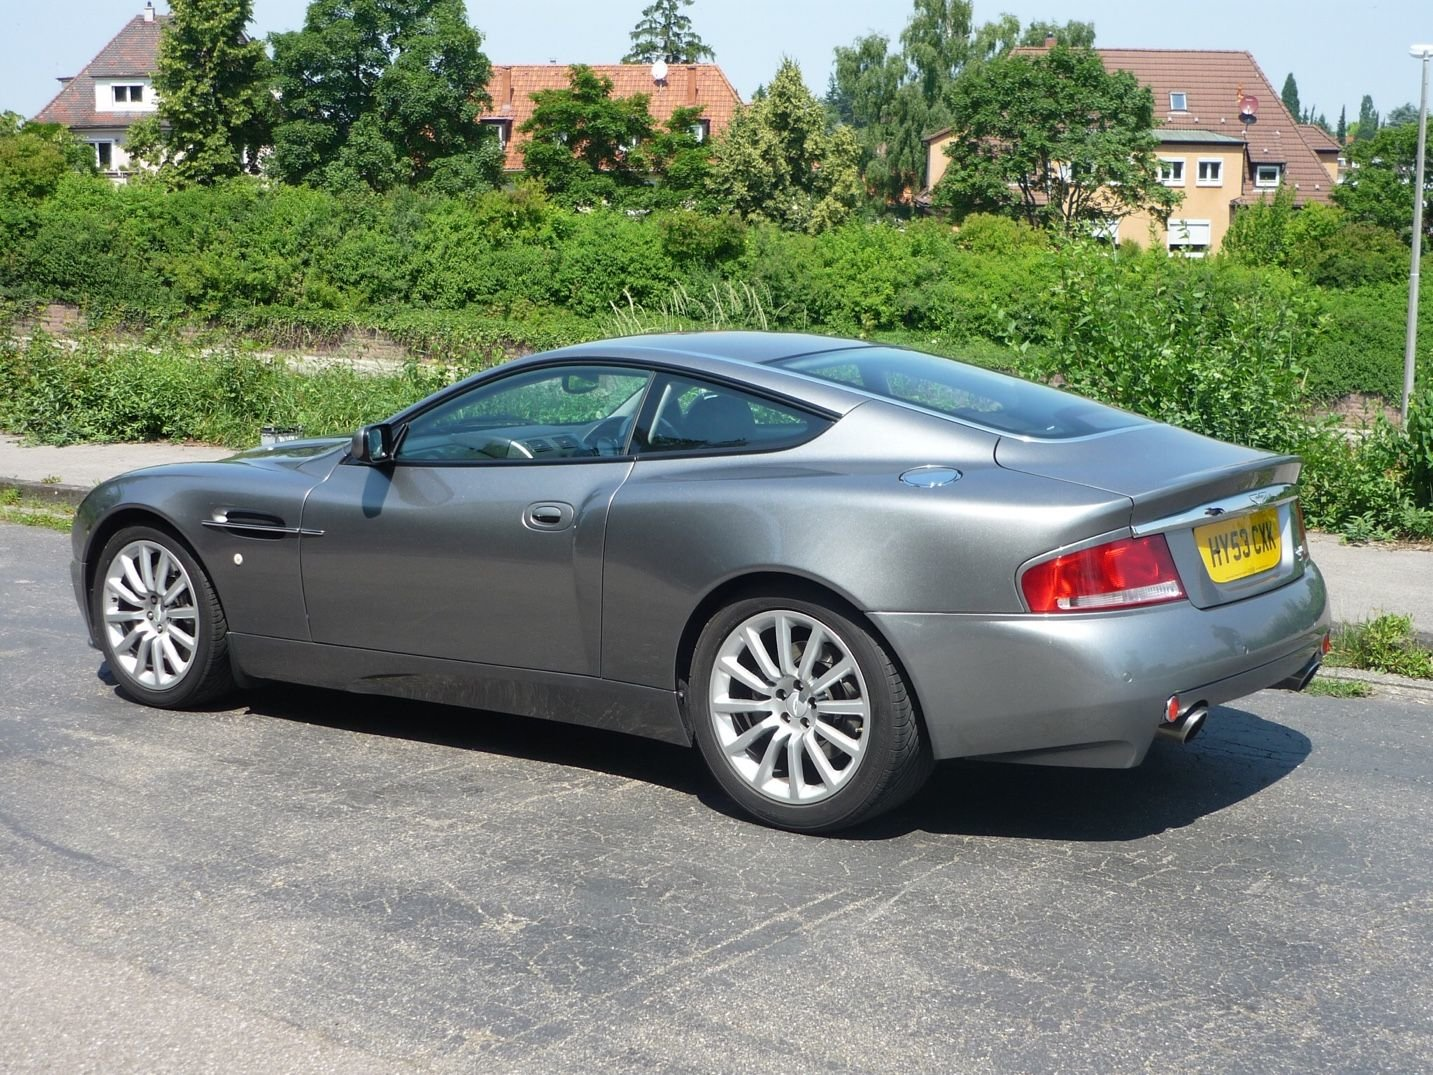 2004 Aston Martin Vanquish For Sale (picture 2 of 6)